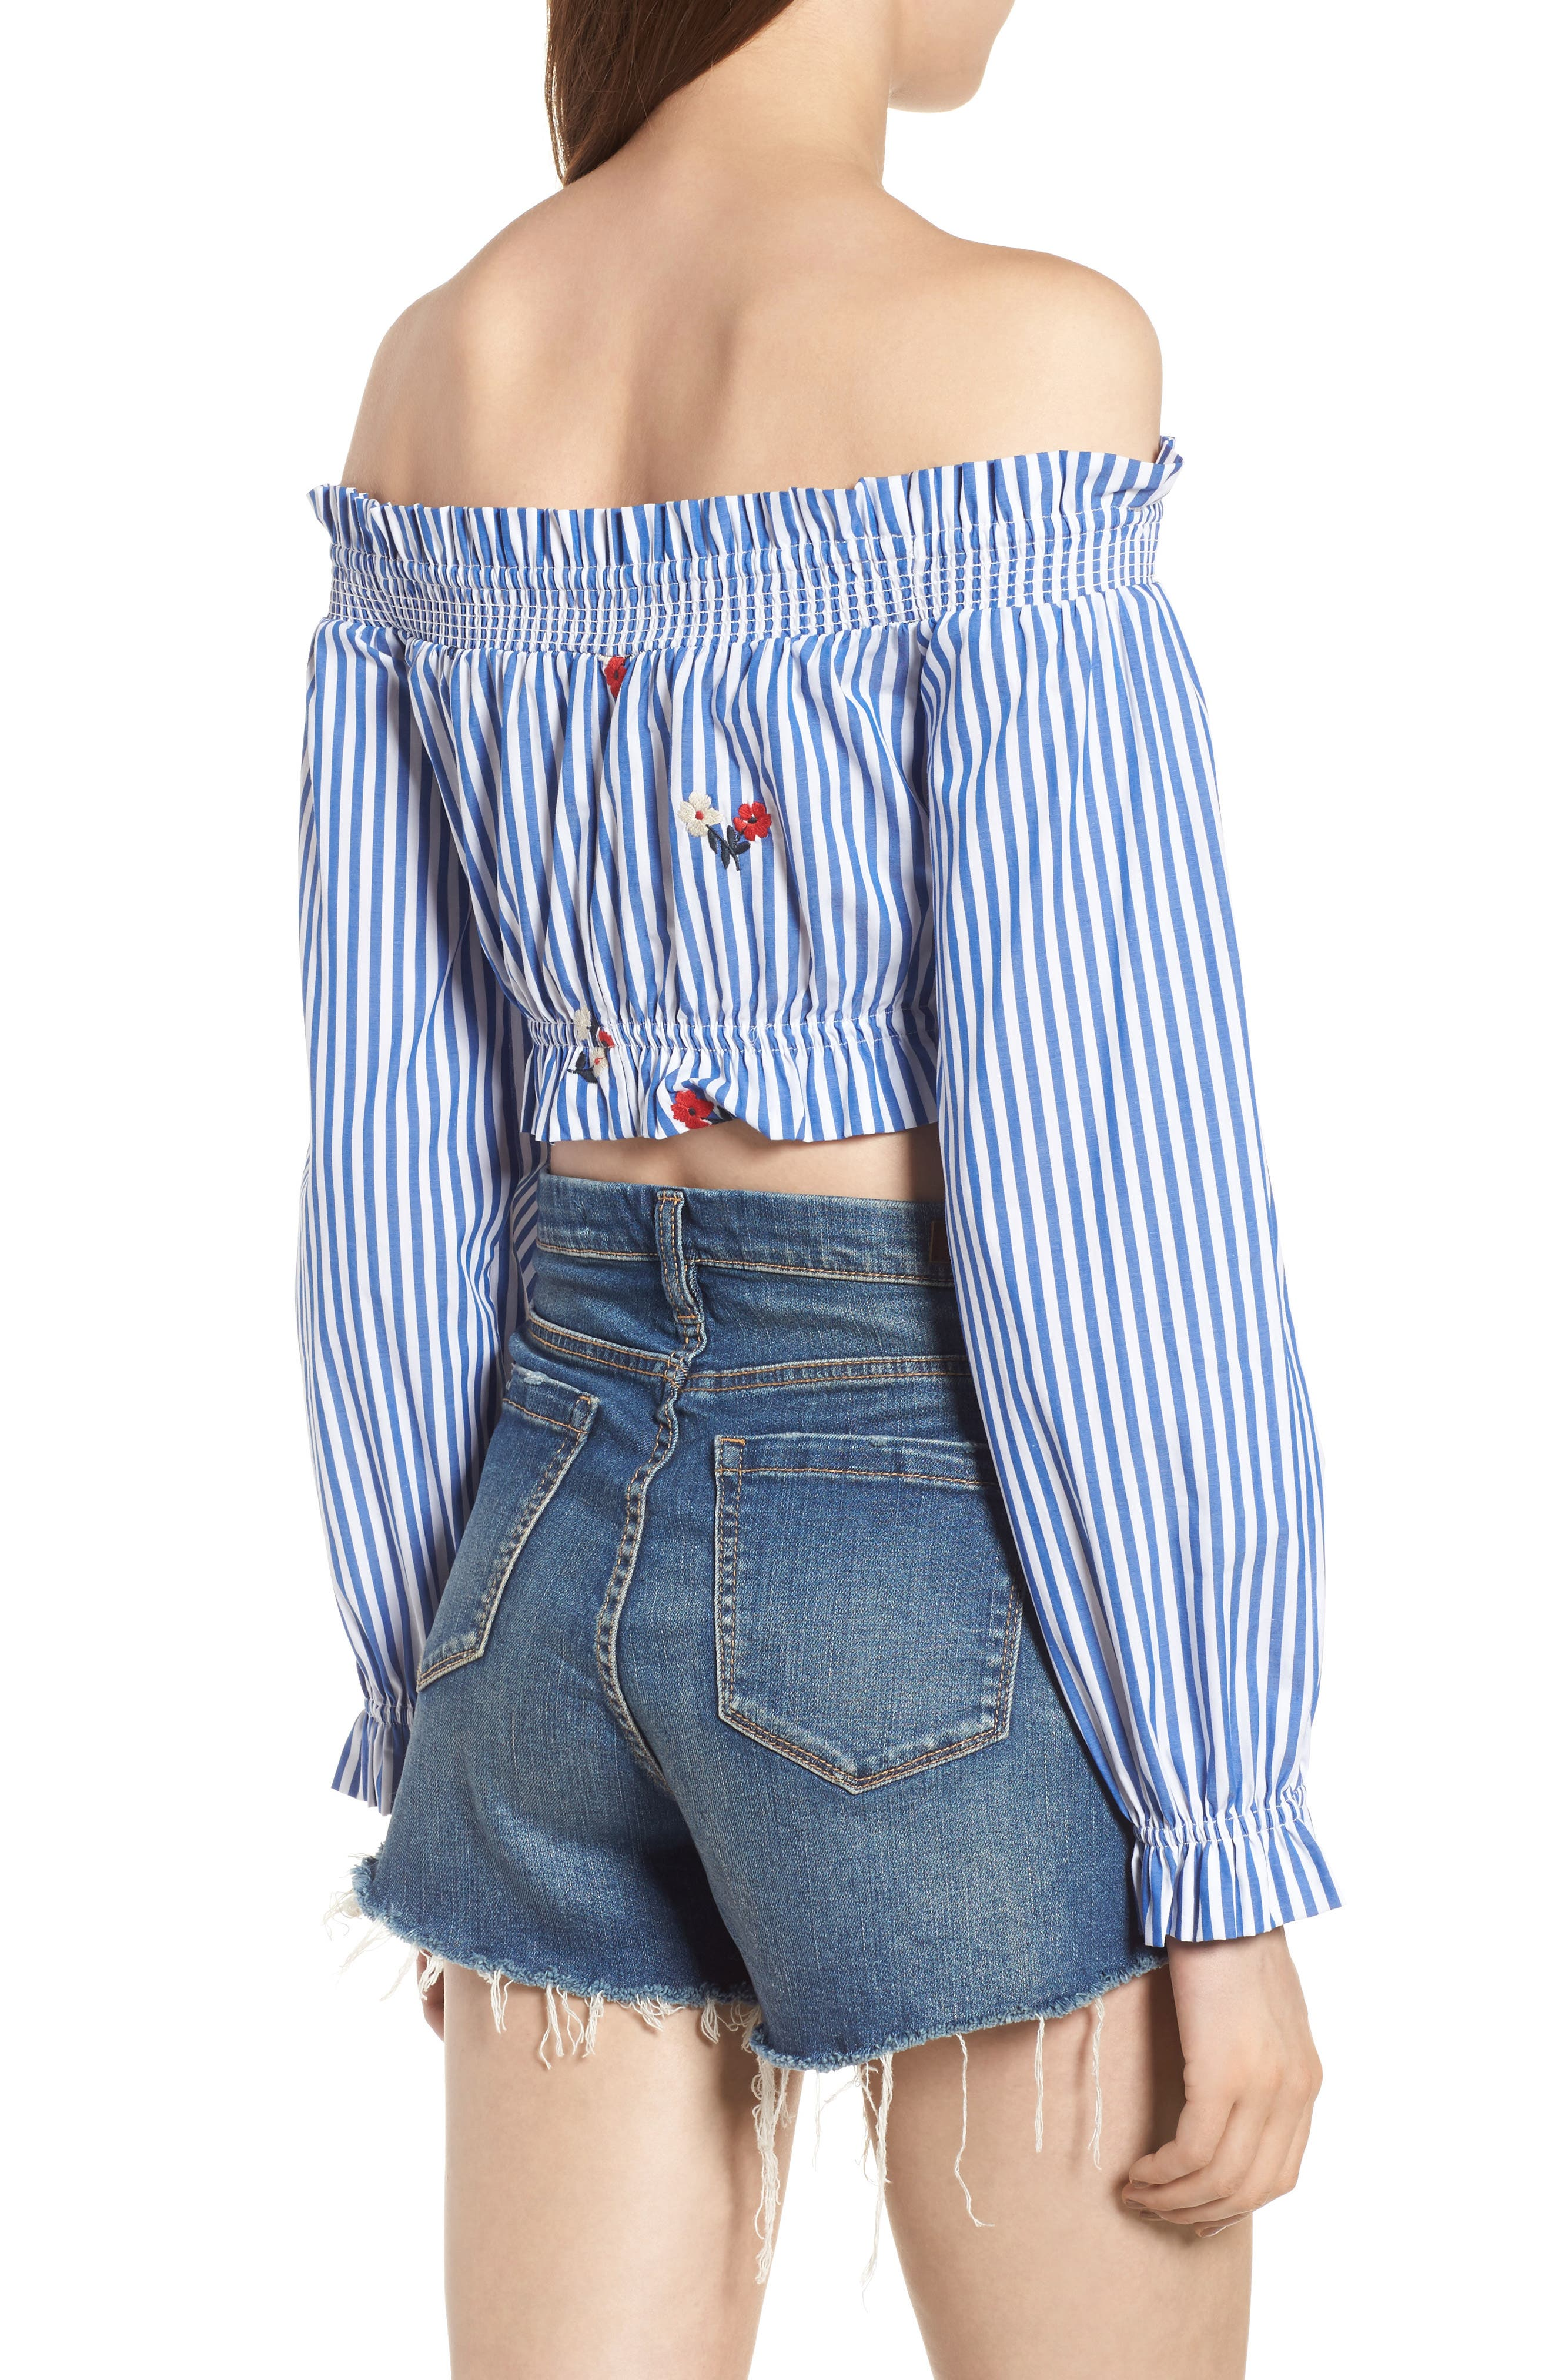 Chloe + Katie Embroidered Off the Shoulder Crop Top,                             Alternate thumbnail 2, color,                             400